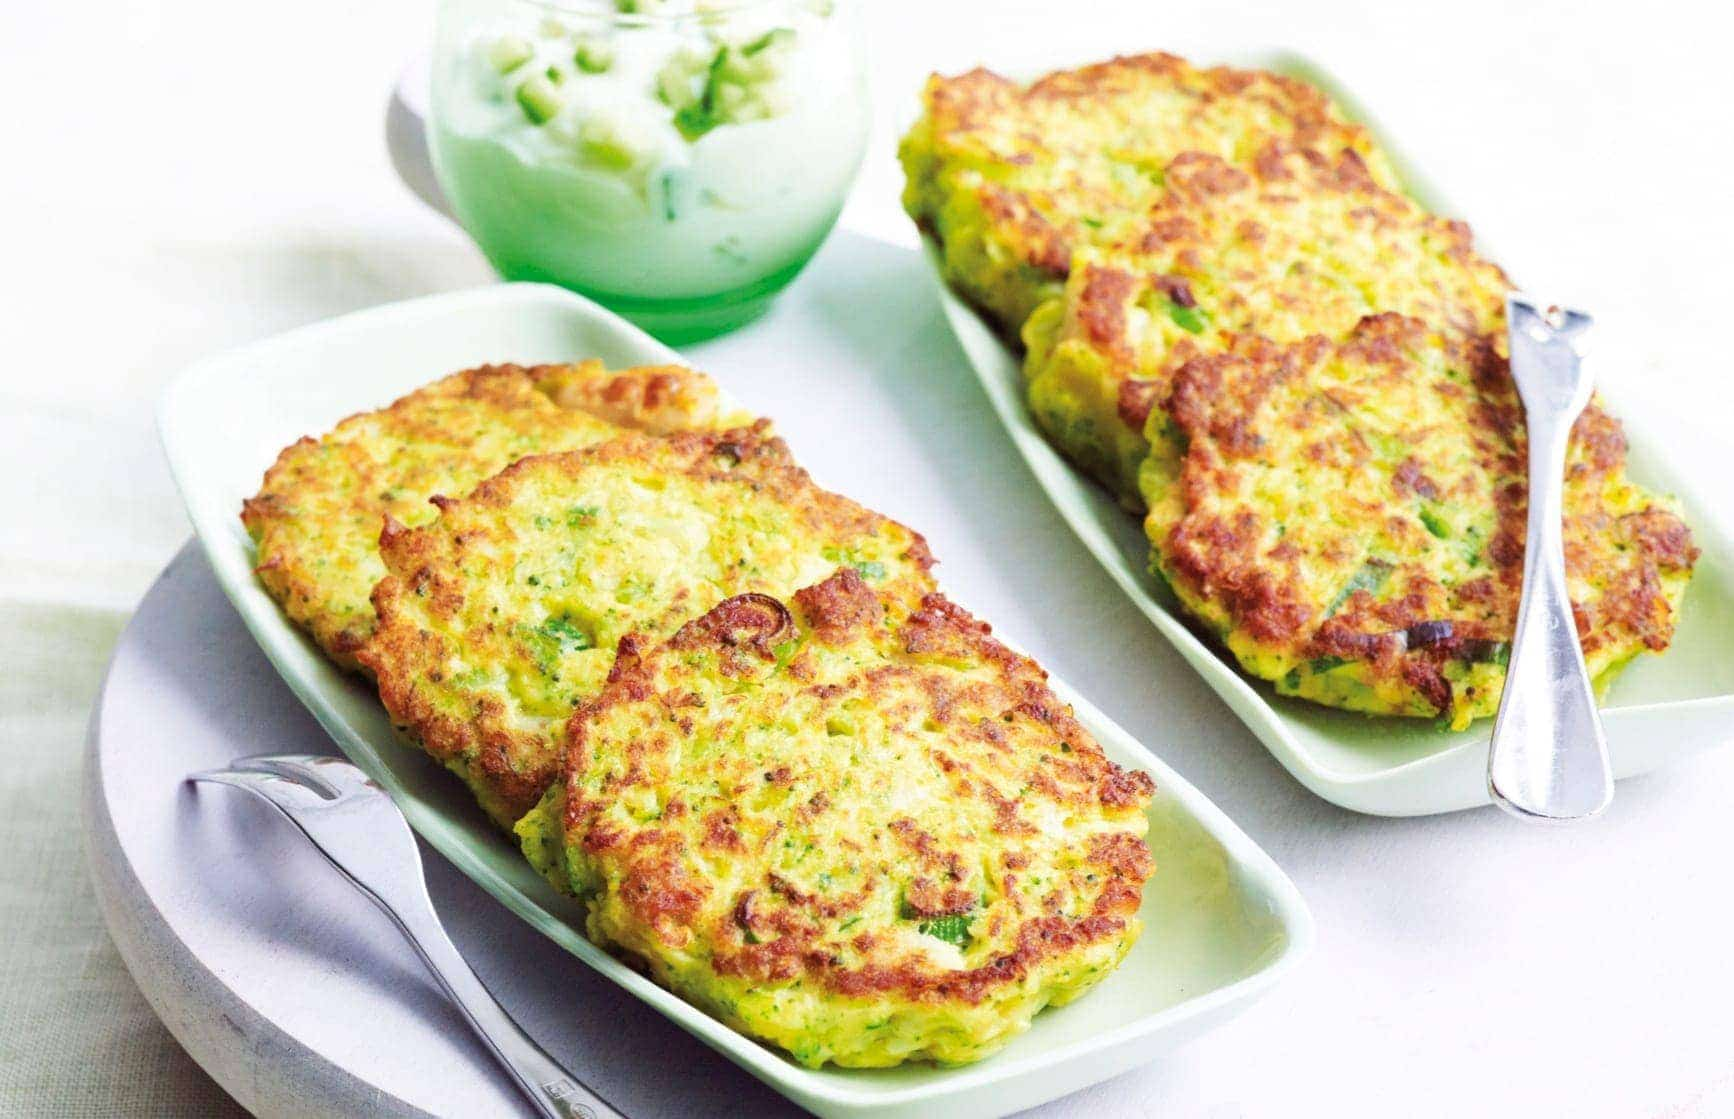 Floret fritters with tzatzaki - Healthy Food Guide